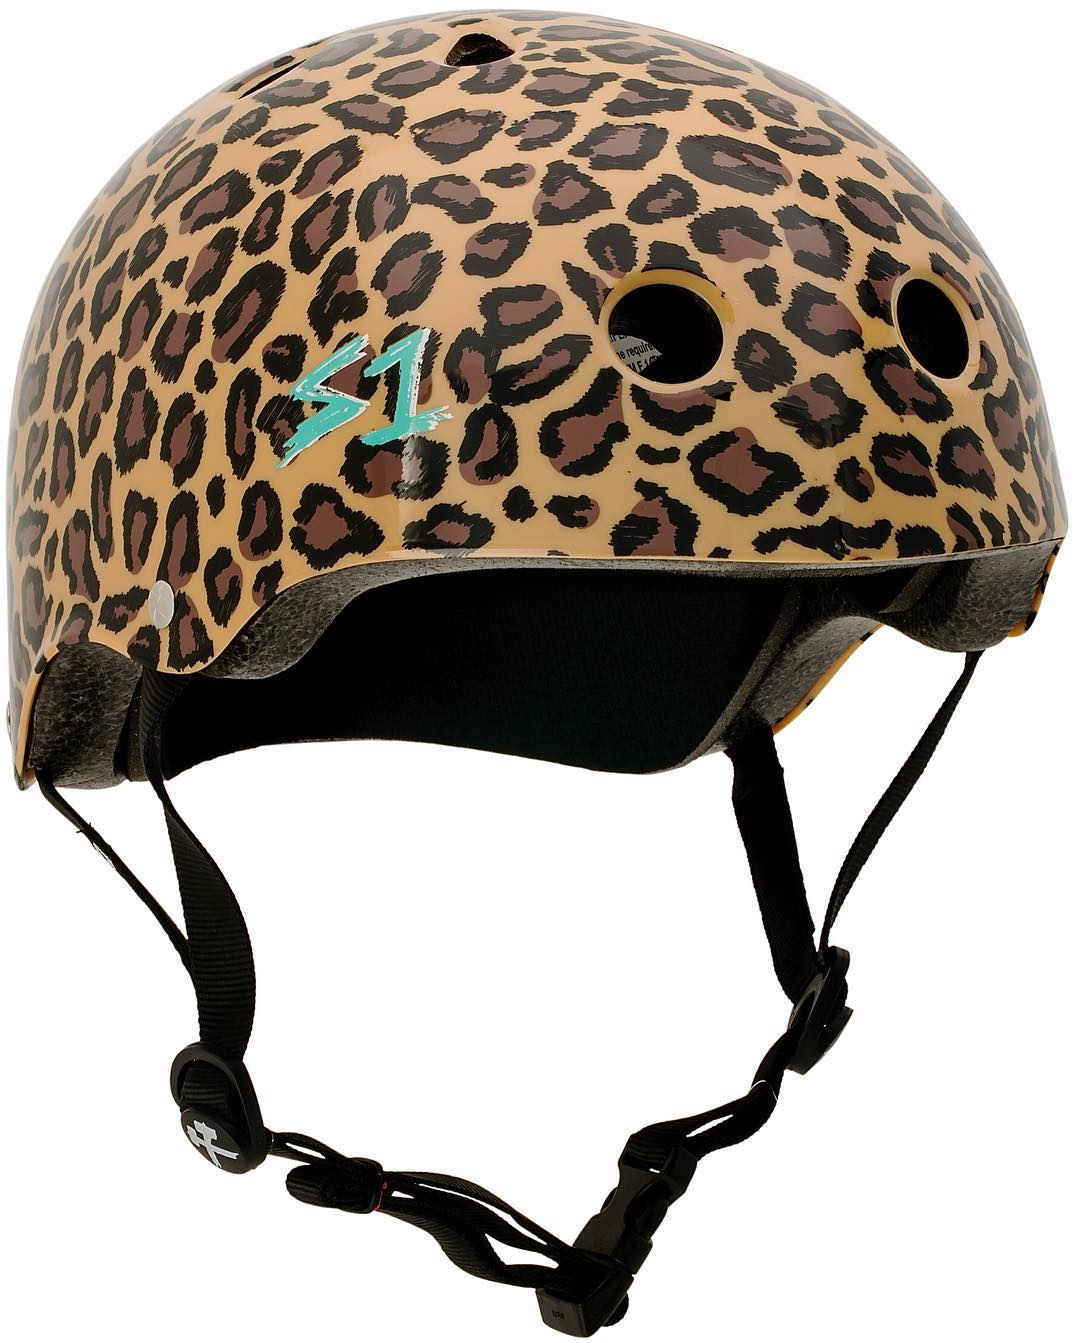 S1 & @moxirollerskates & @estrojen teamed up to create this leopard print Lifer helmet . Get one at @moxiskateshop today ! #s1liferhelmet #s1helmets #liferhelmet